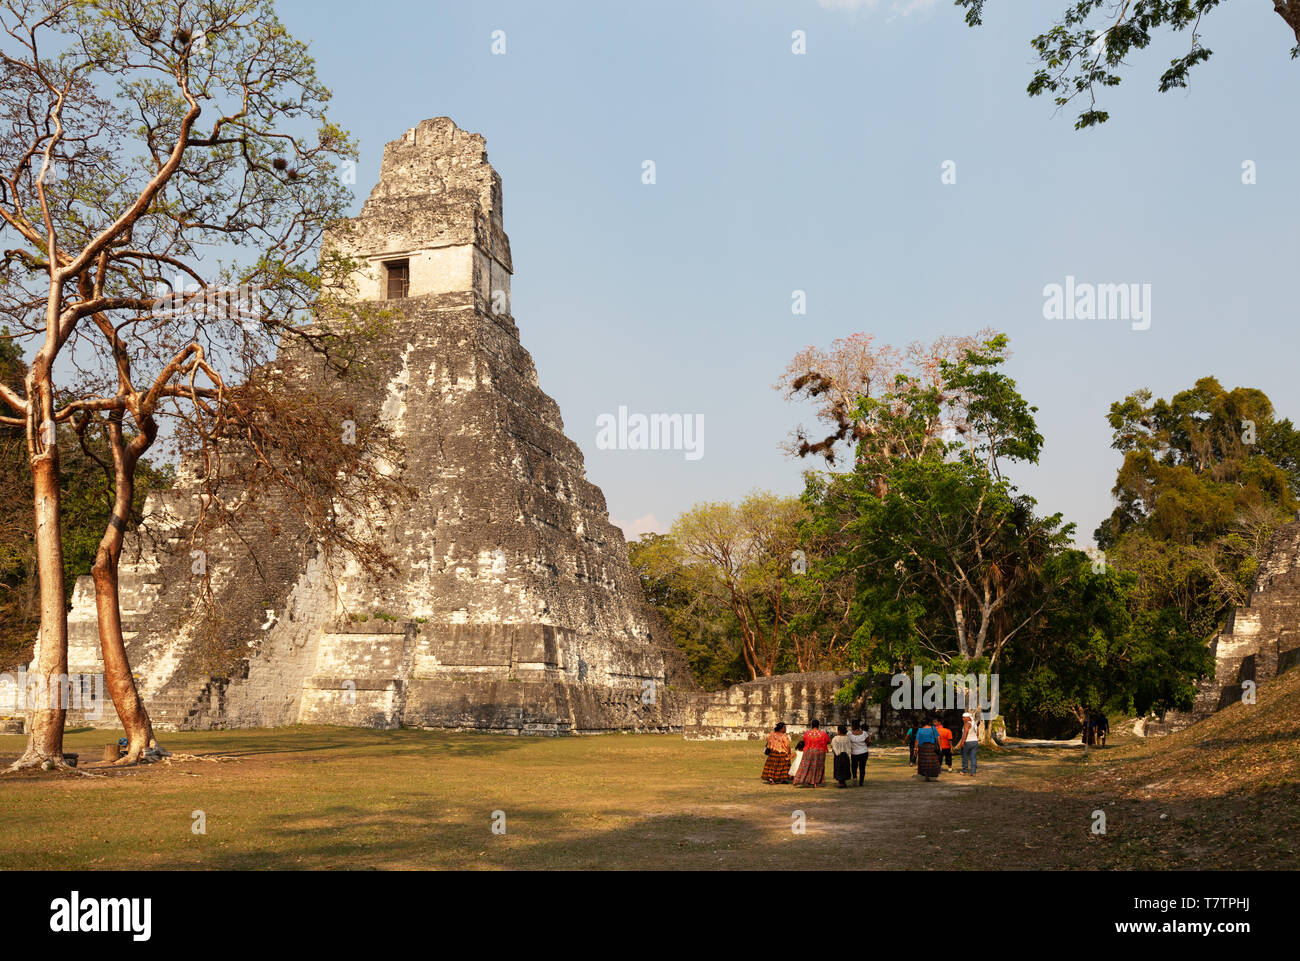 Local people in traditional dress and Temple 1, or Temple of the Great Jaguar, a ruined mayan temple,Tikal National Park, Guatemala Central America - Stock Image